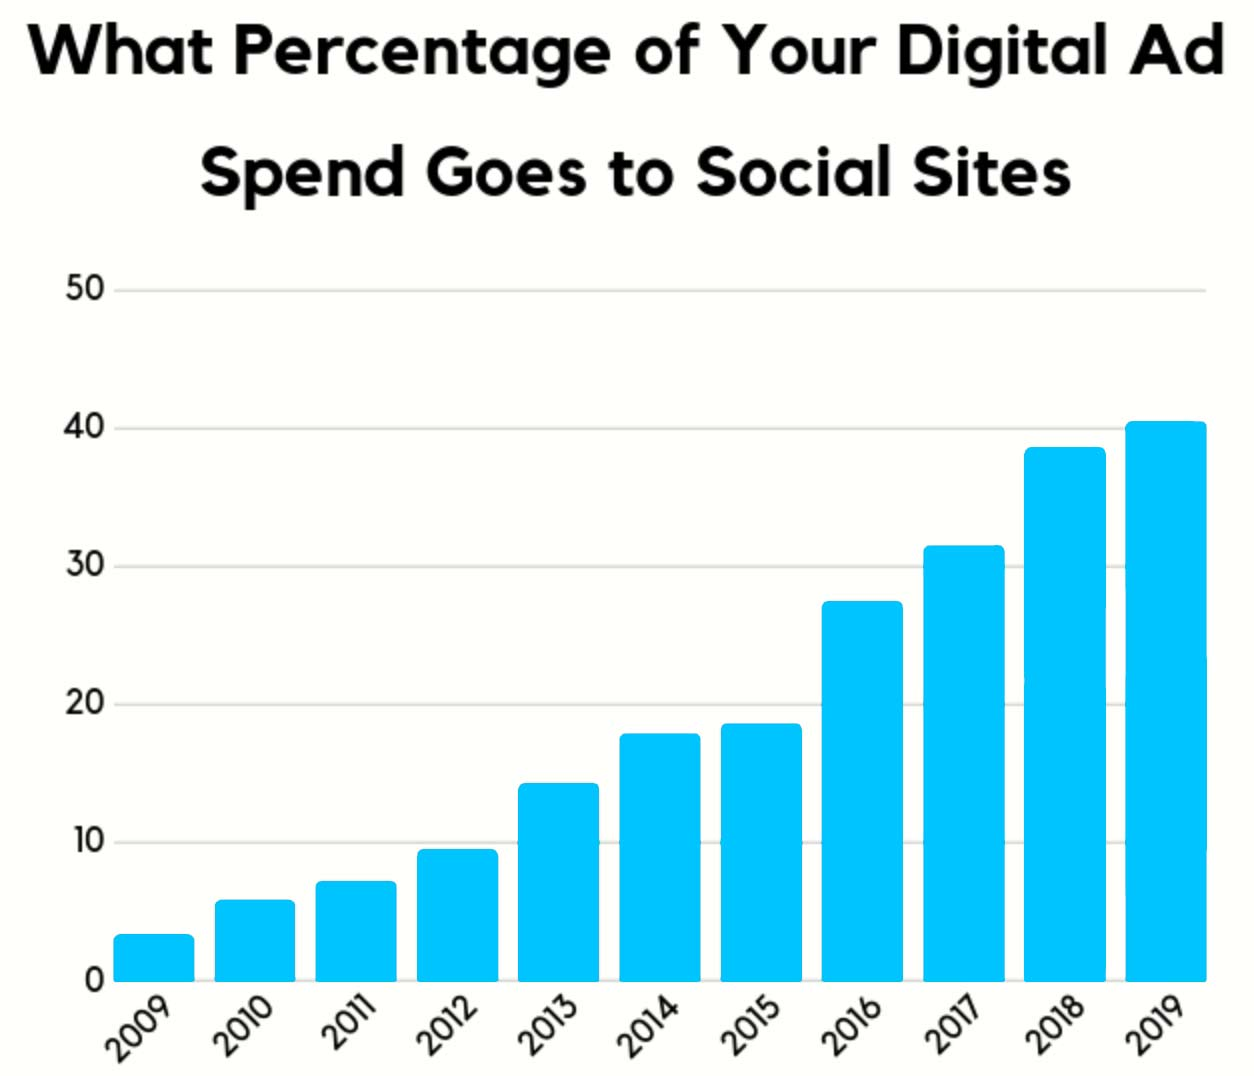 What percentage of your digital ad spend goes to social sites?